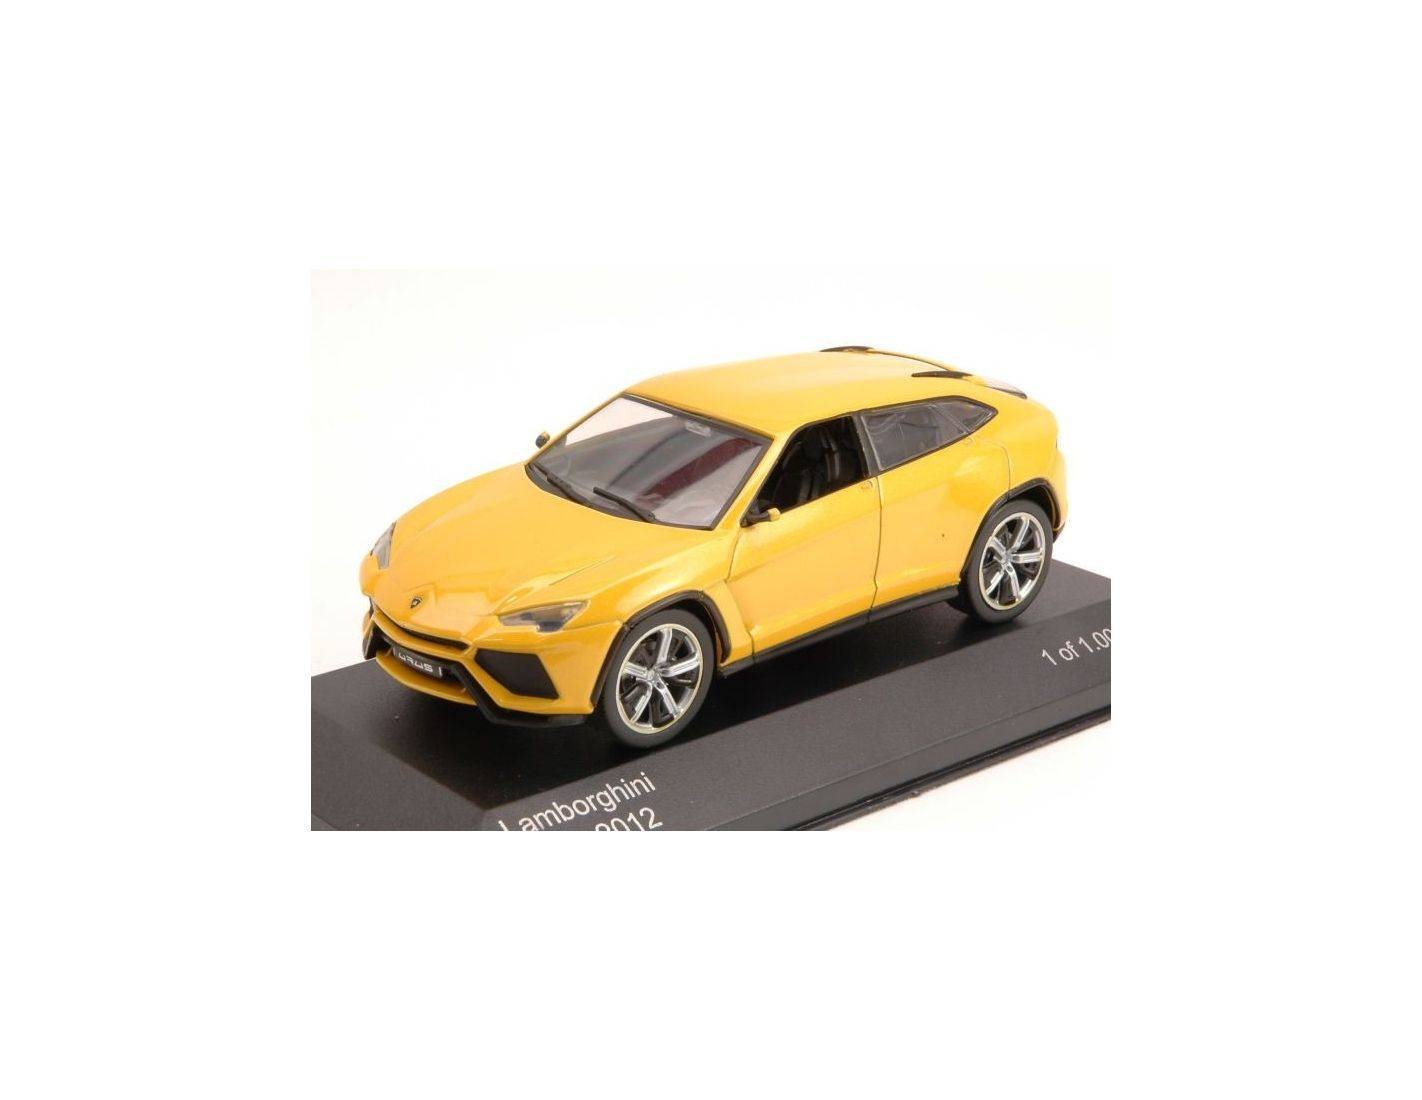 white box wb076 lamborghini urus 2012 yellow 1 43 modellino mod les r duits de collection. Black Bedroom Furniture Sets. Home Design Ideas